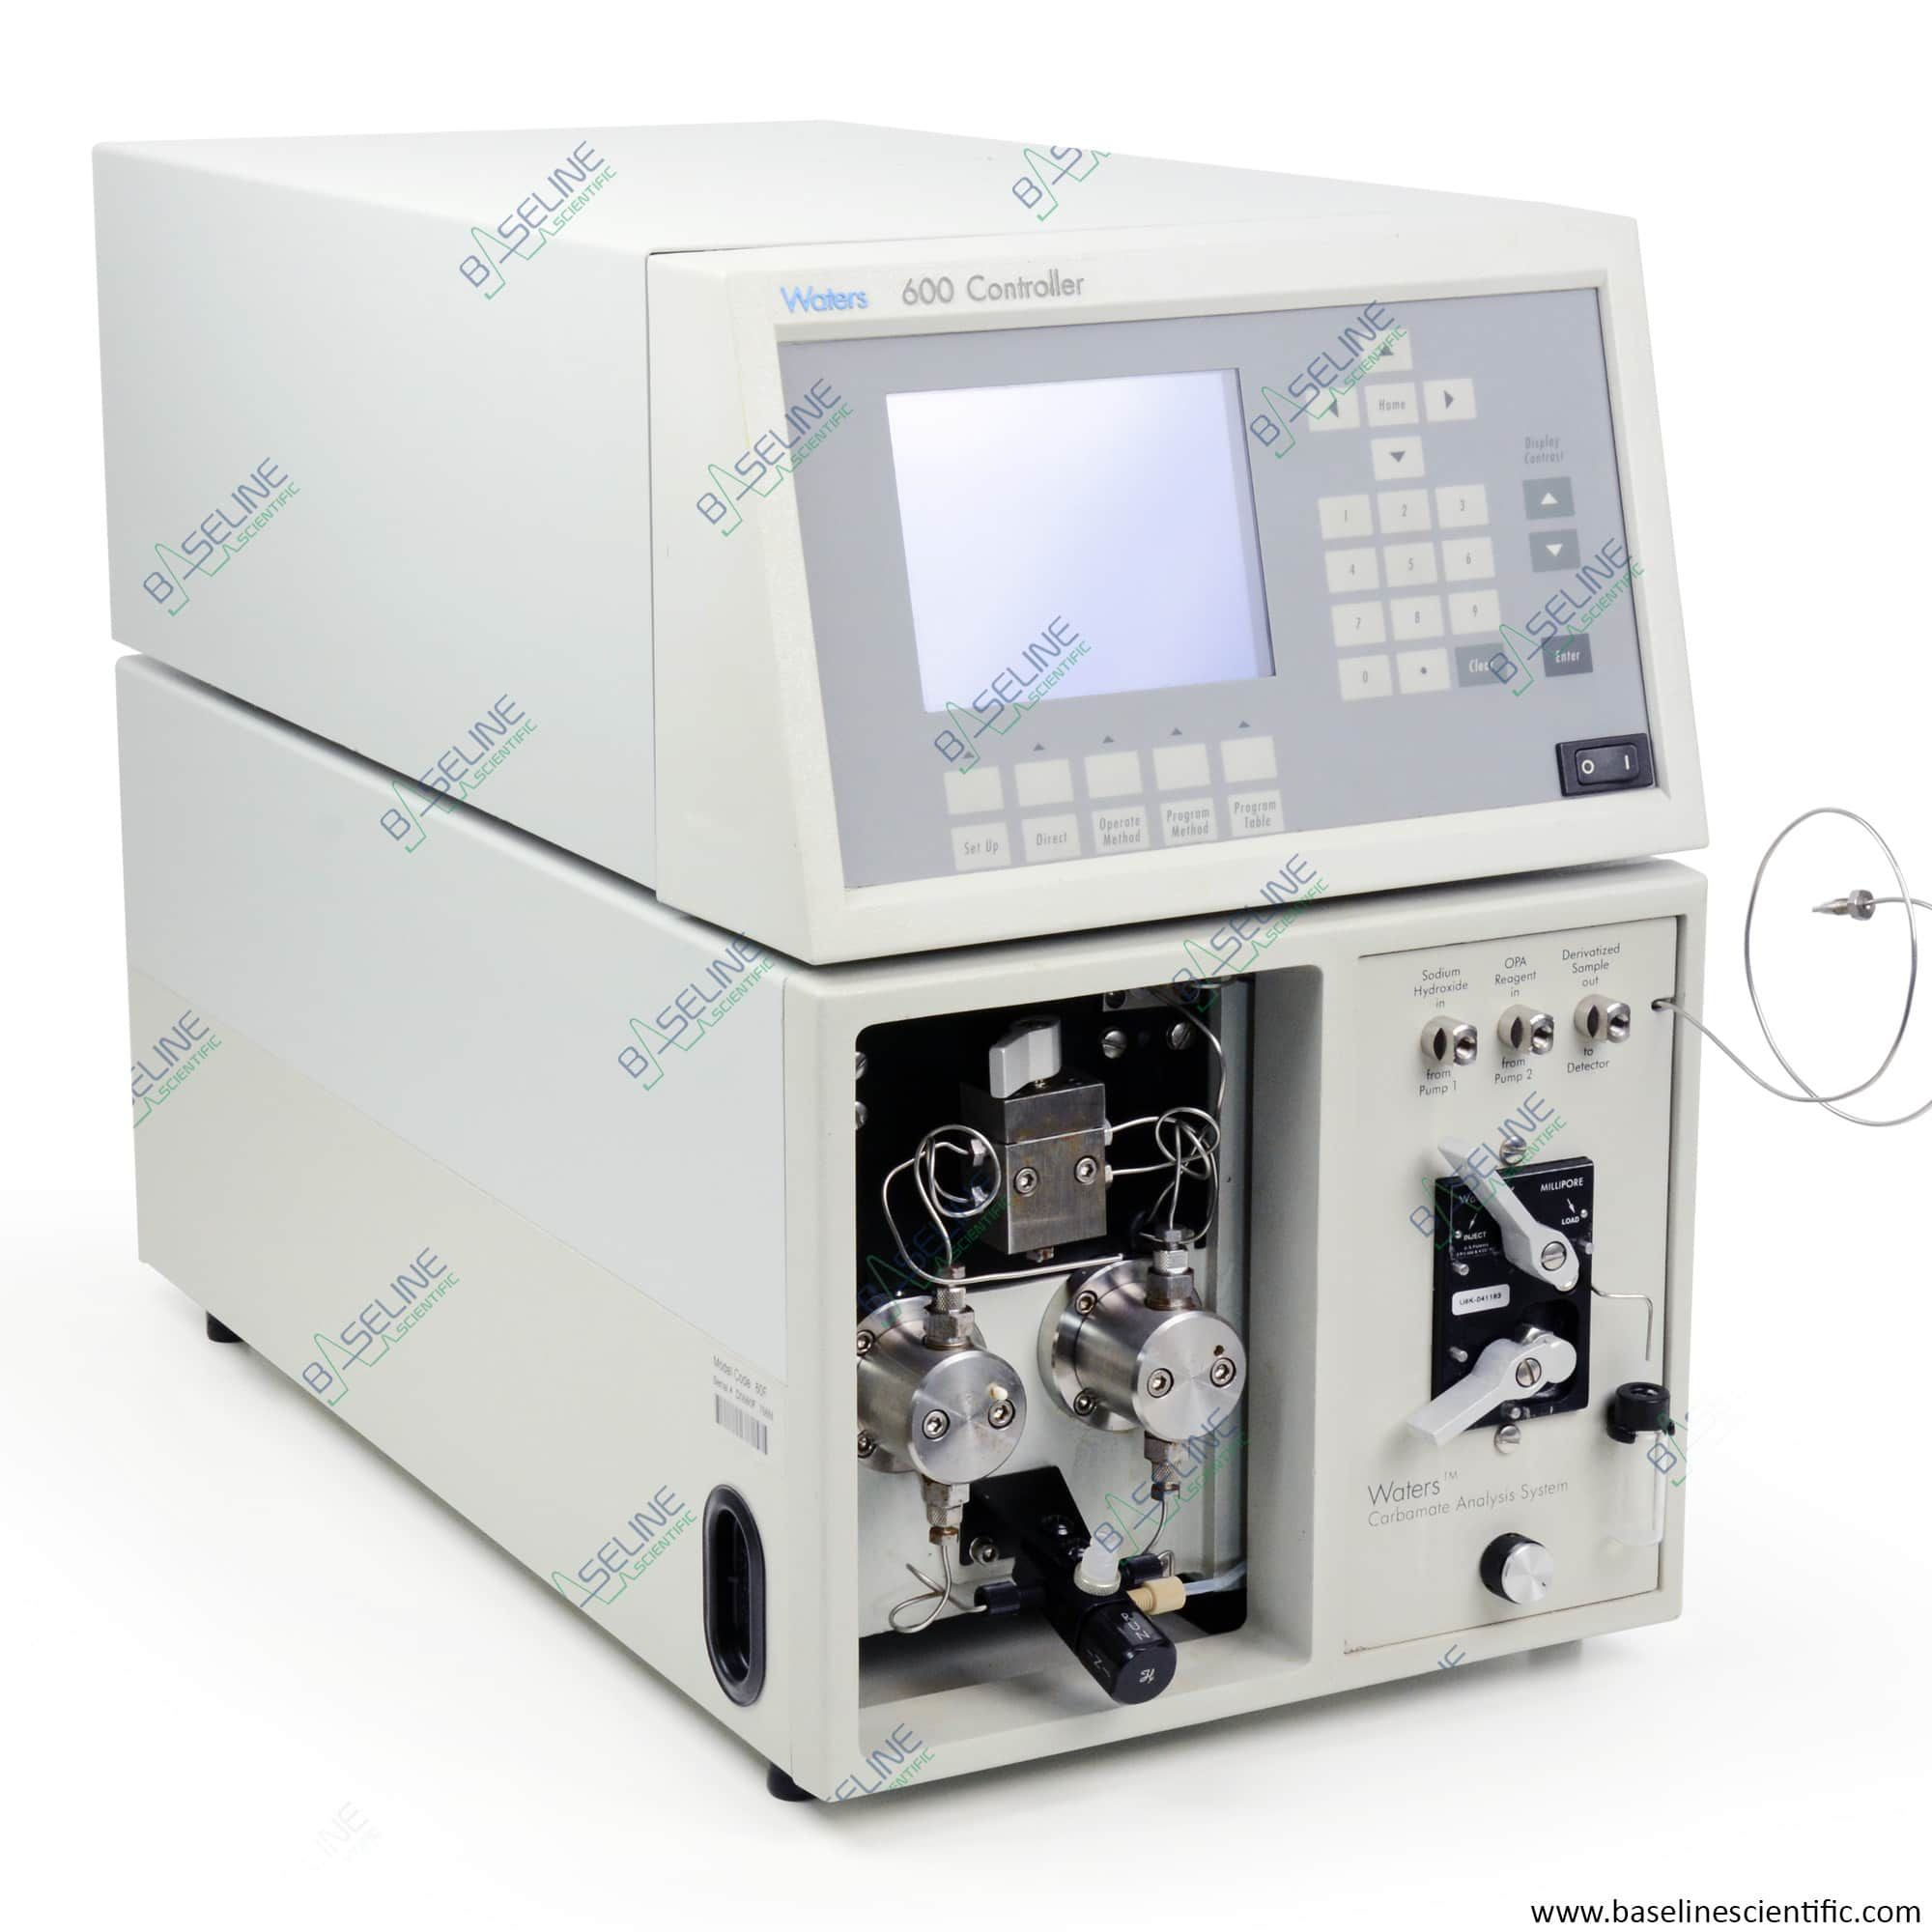 Refurbished Waters 600 HPLC Controller and Pump with ONE YEAR WARRANTY